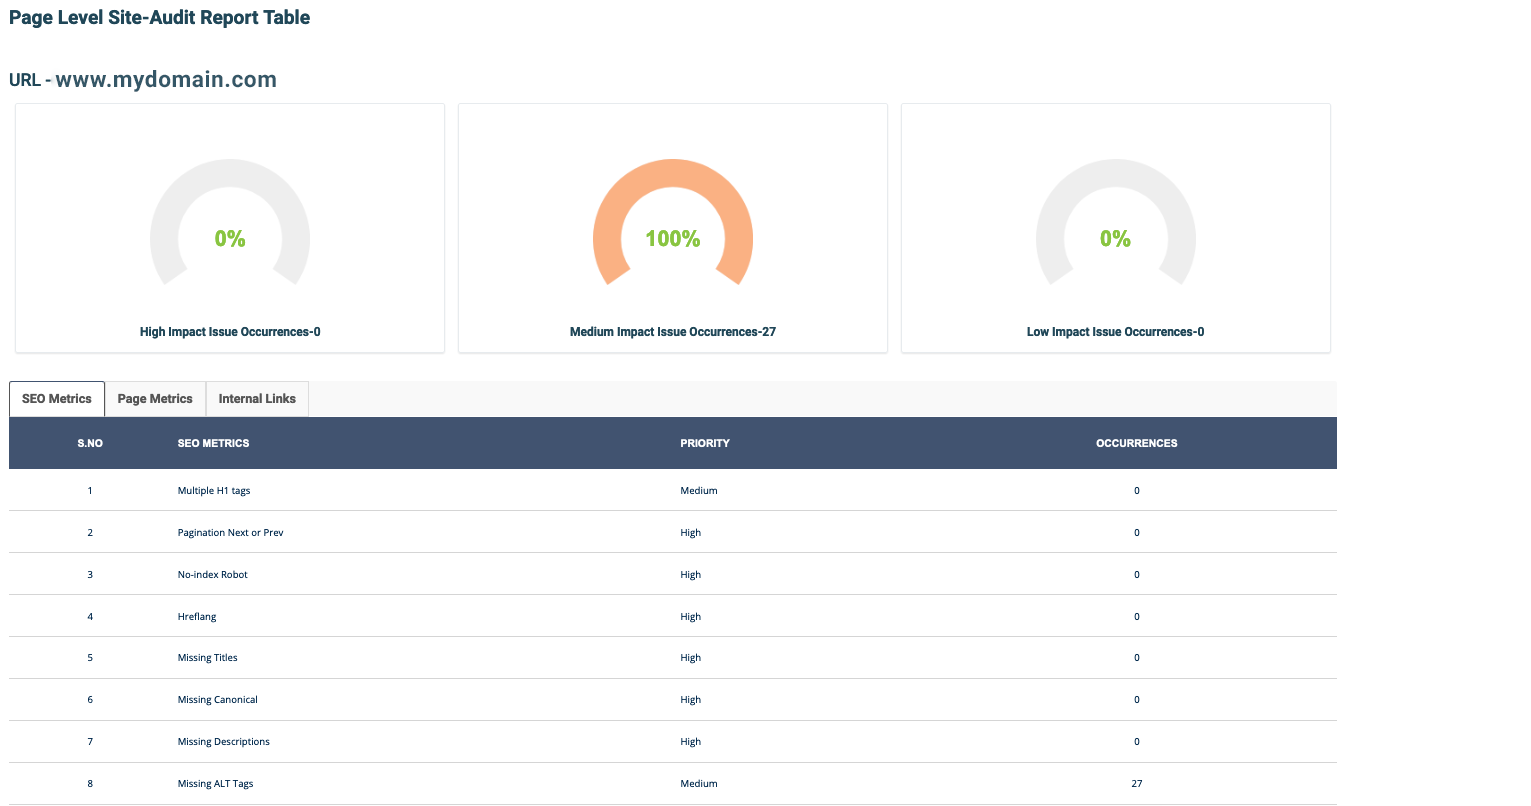 Page-level site audit report